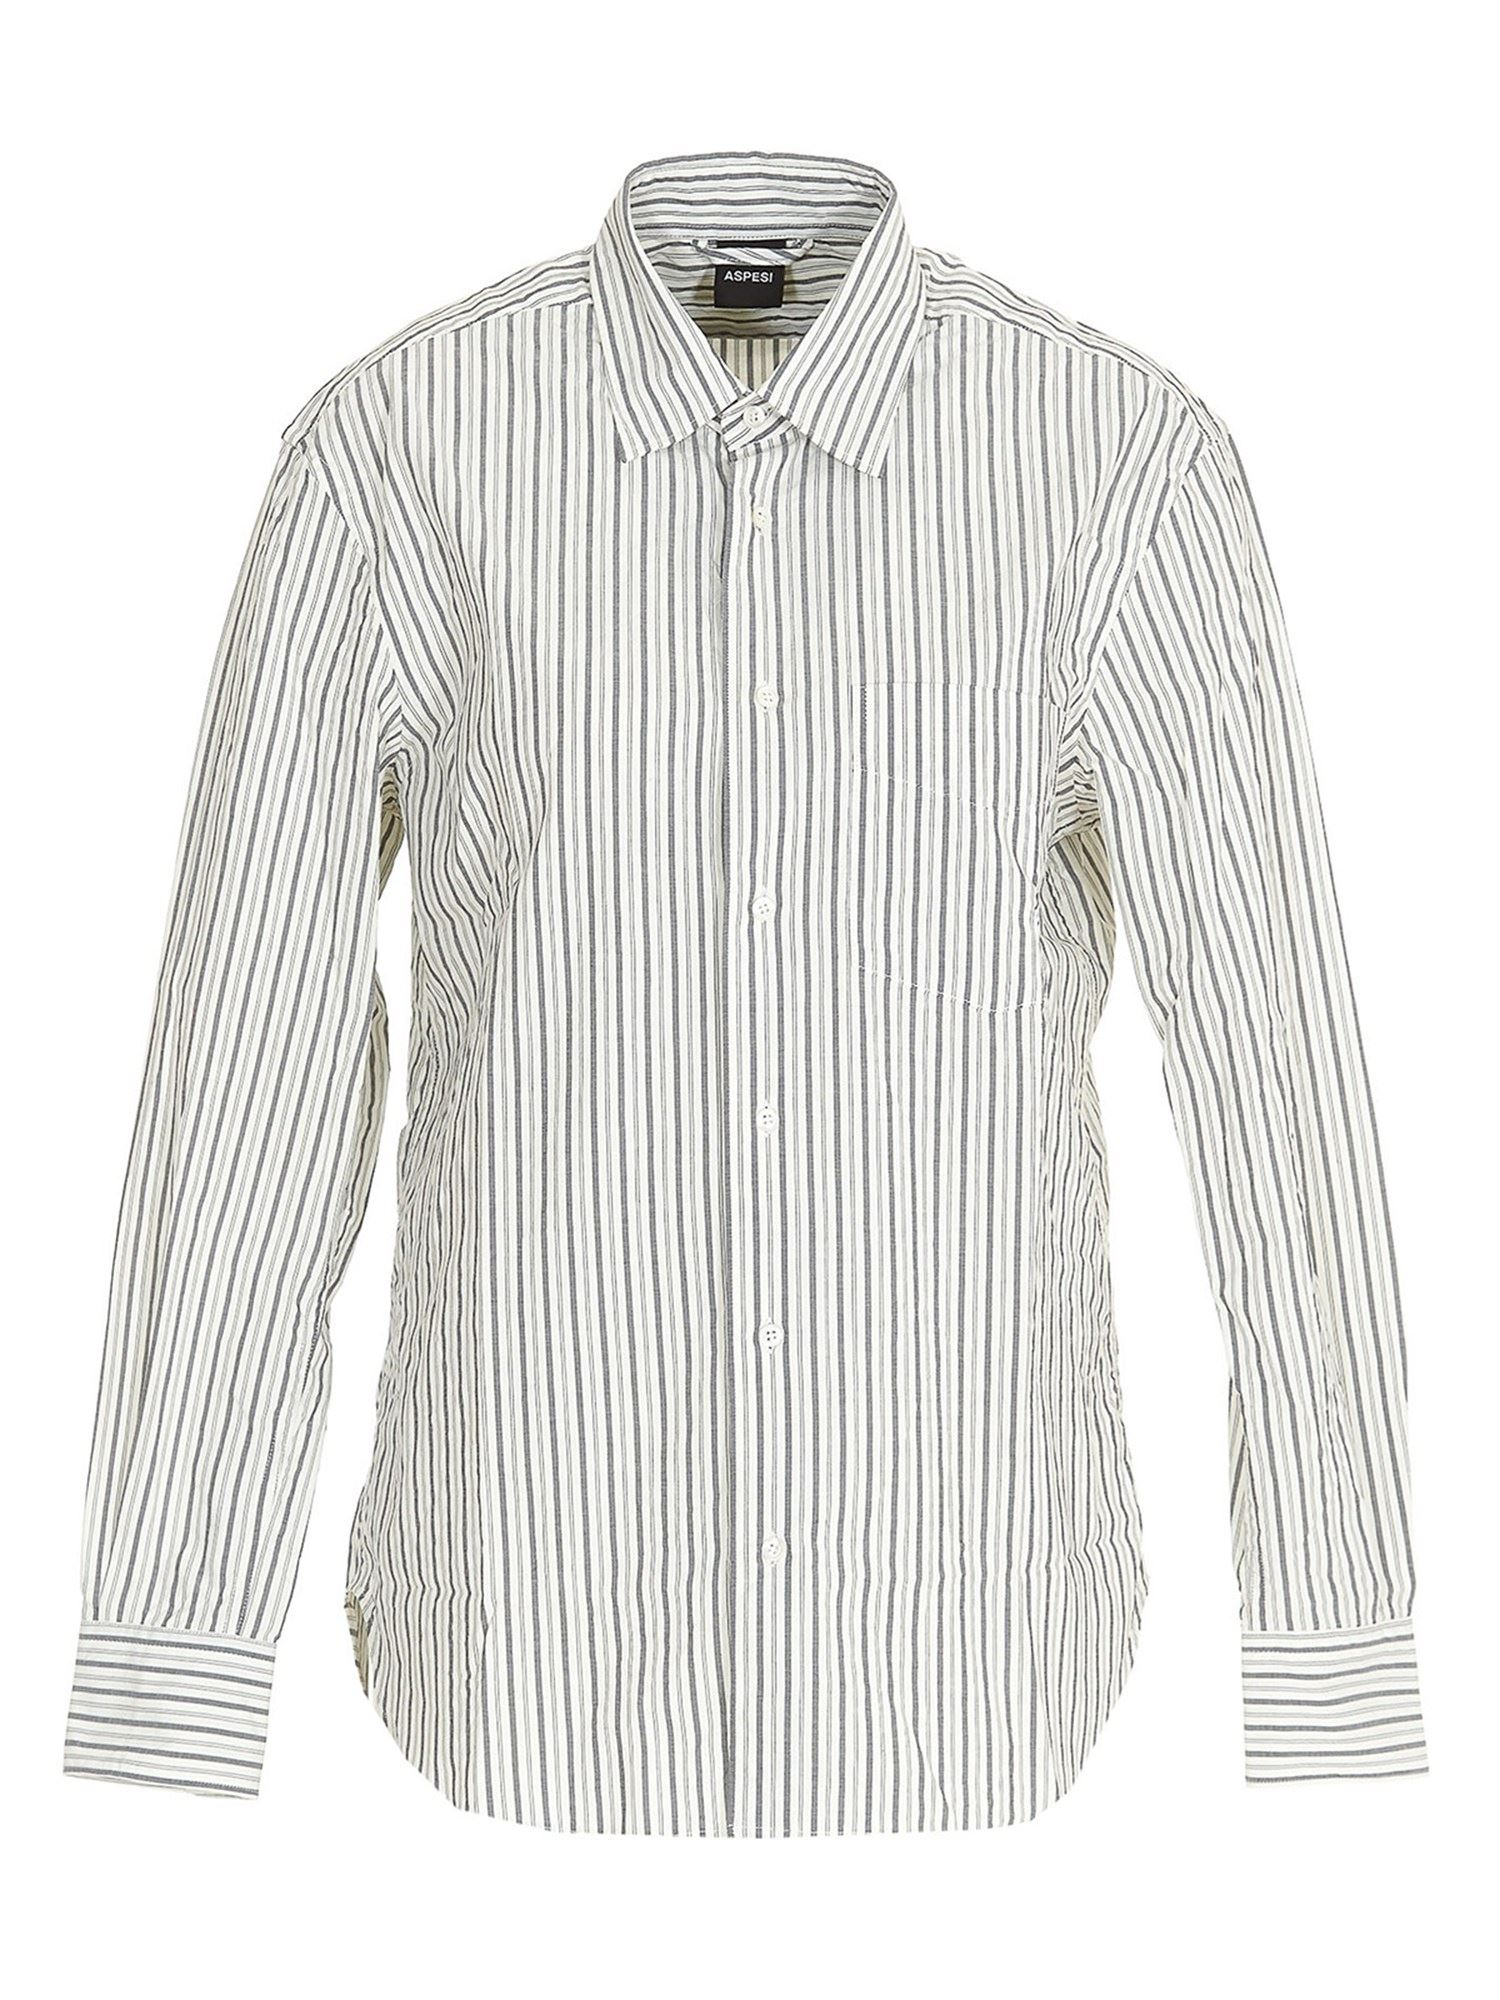 Aspesi STRIPES PATTERNED SHIRT